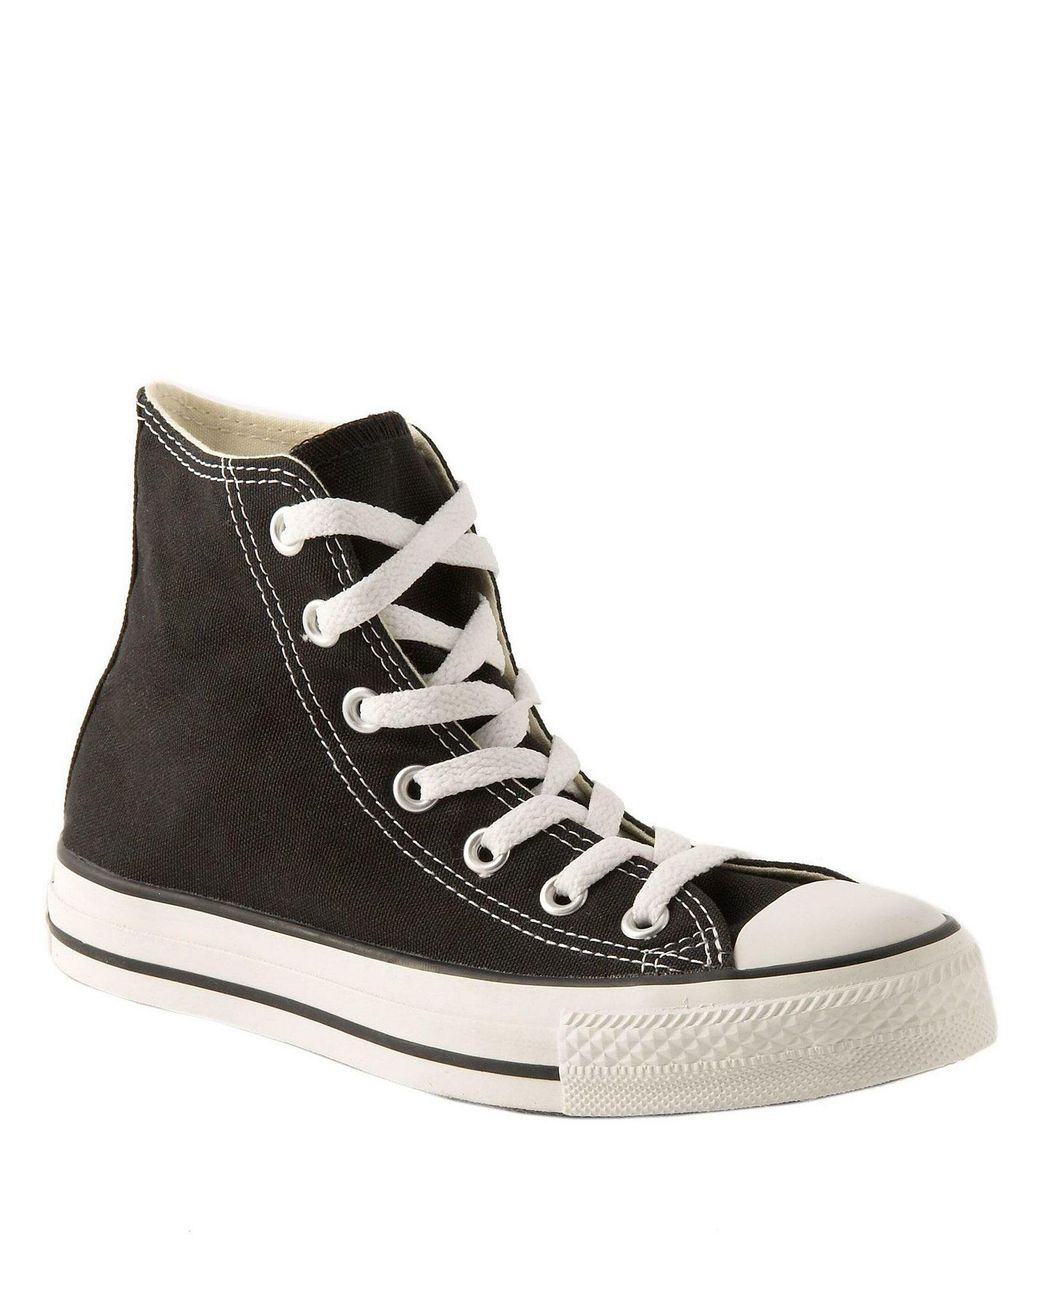 e55a438aecfd Converse Women s Chuck Taylor All Star Hi-top Sneakers in Black - Lyst